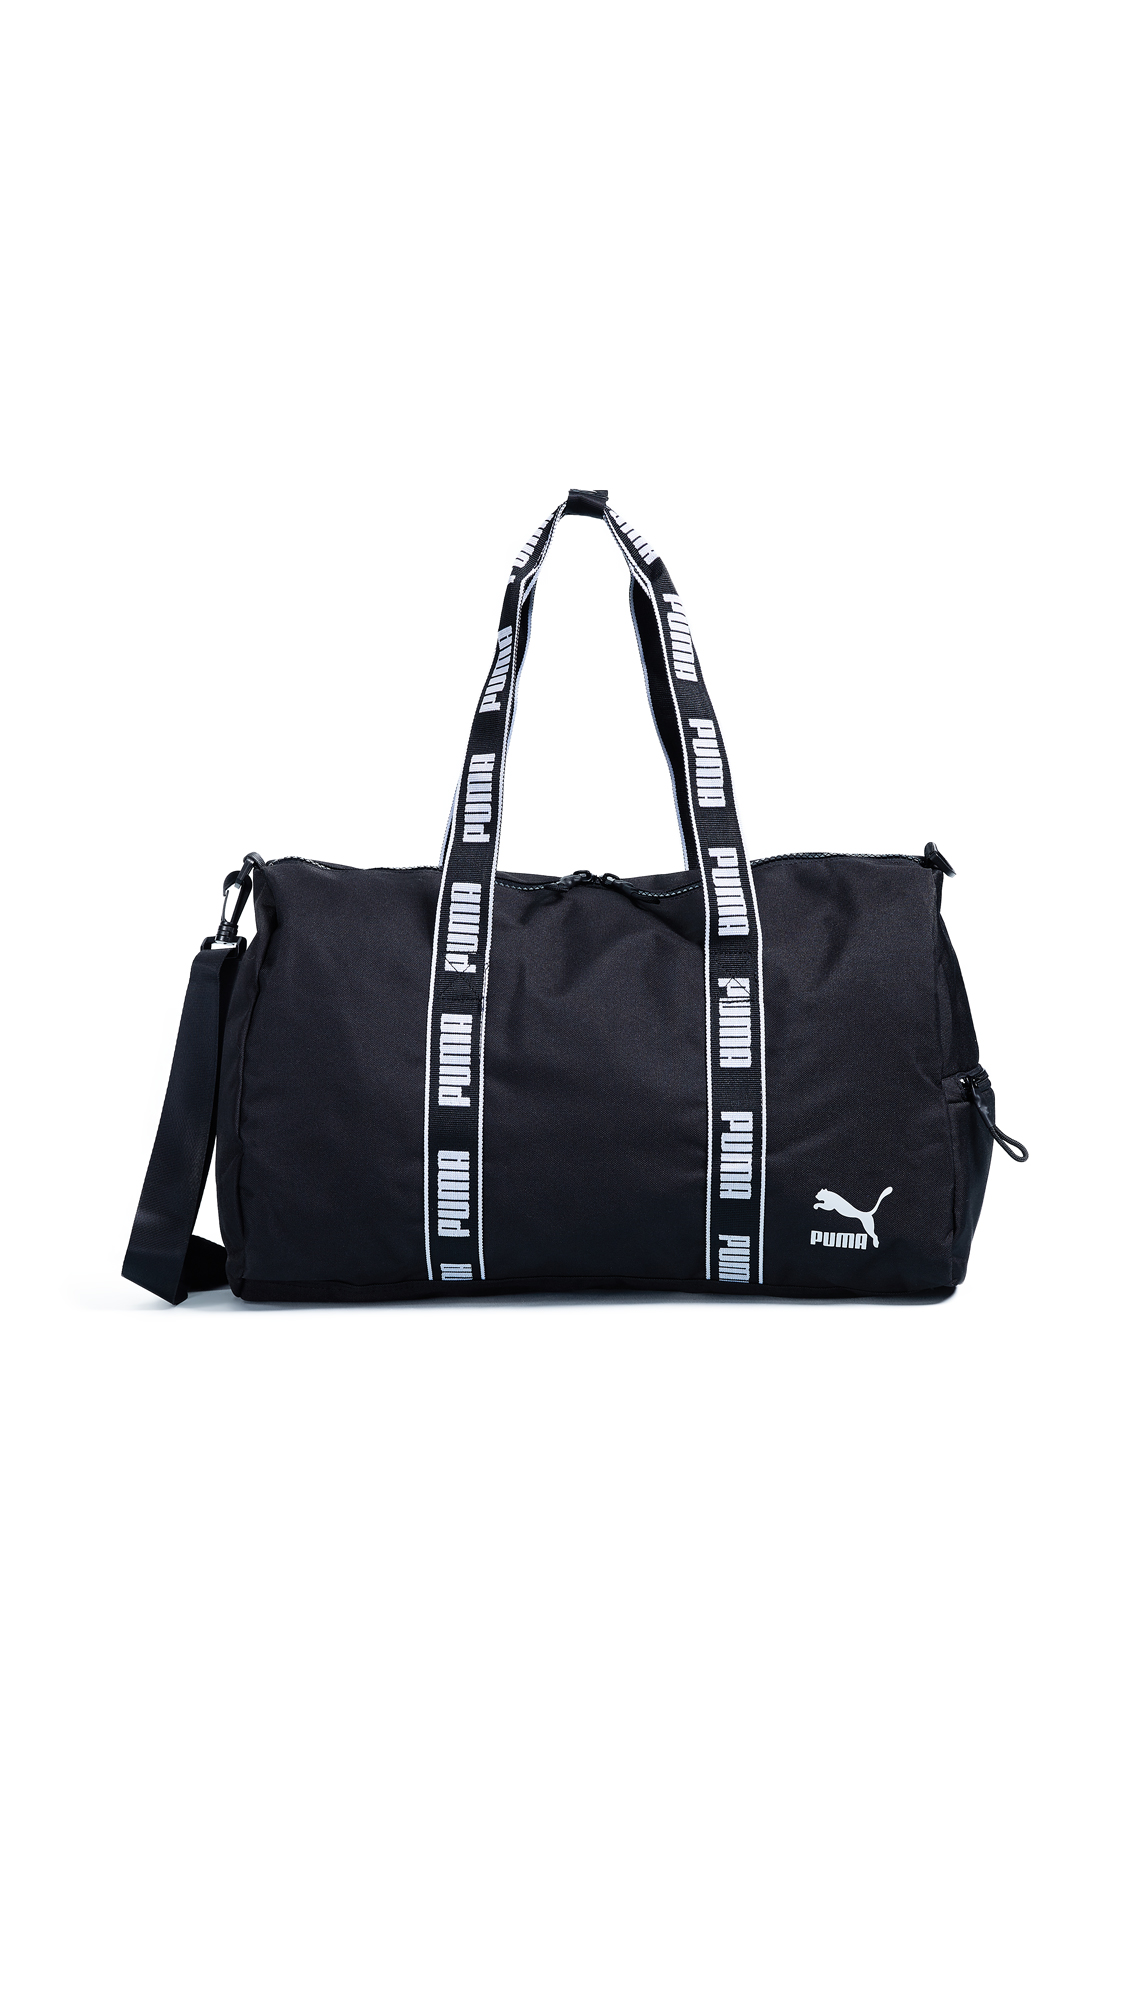 Puma Duffel Bag Canada | Sabis Bulldog Athletics